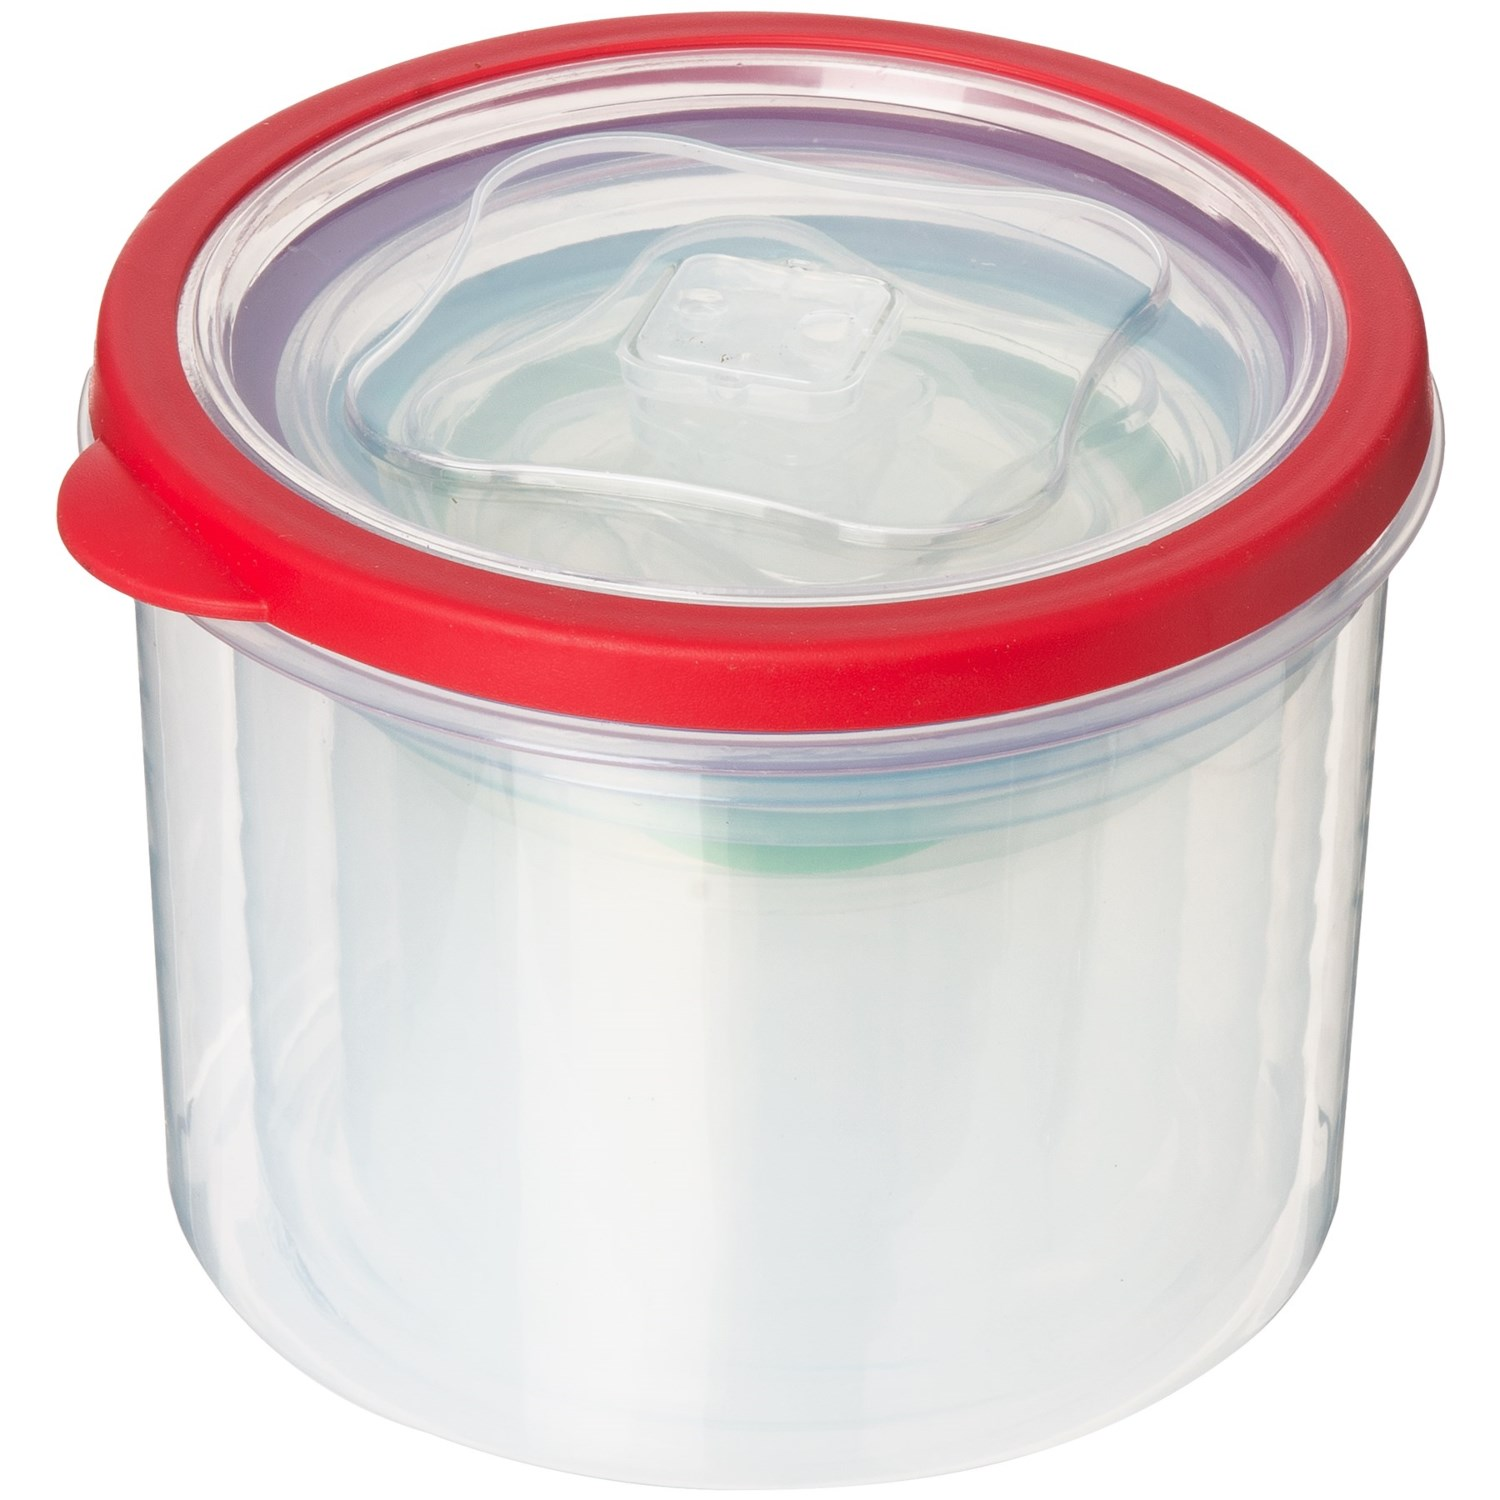 Kitchen Details Rainbow Round Clear Food Storage Containers 10